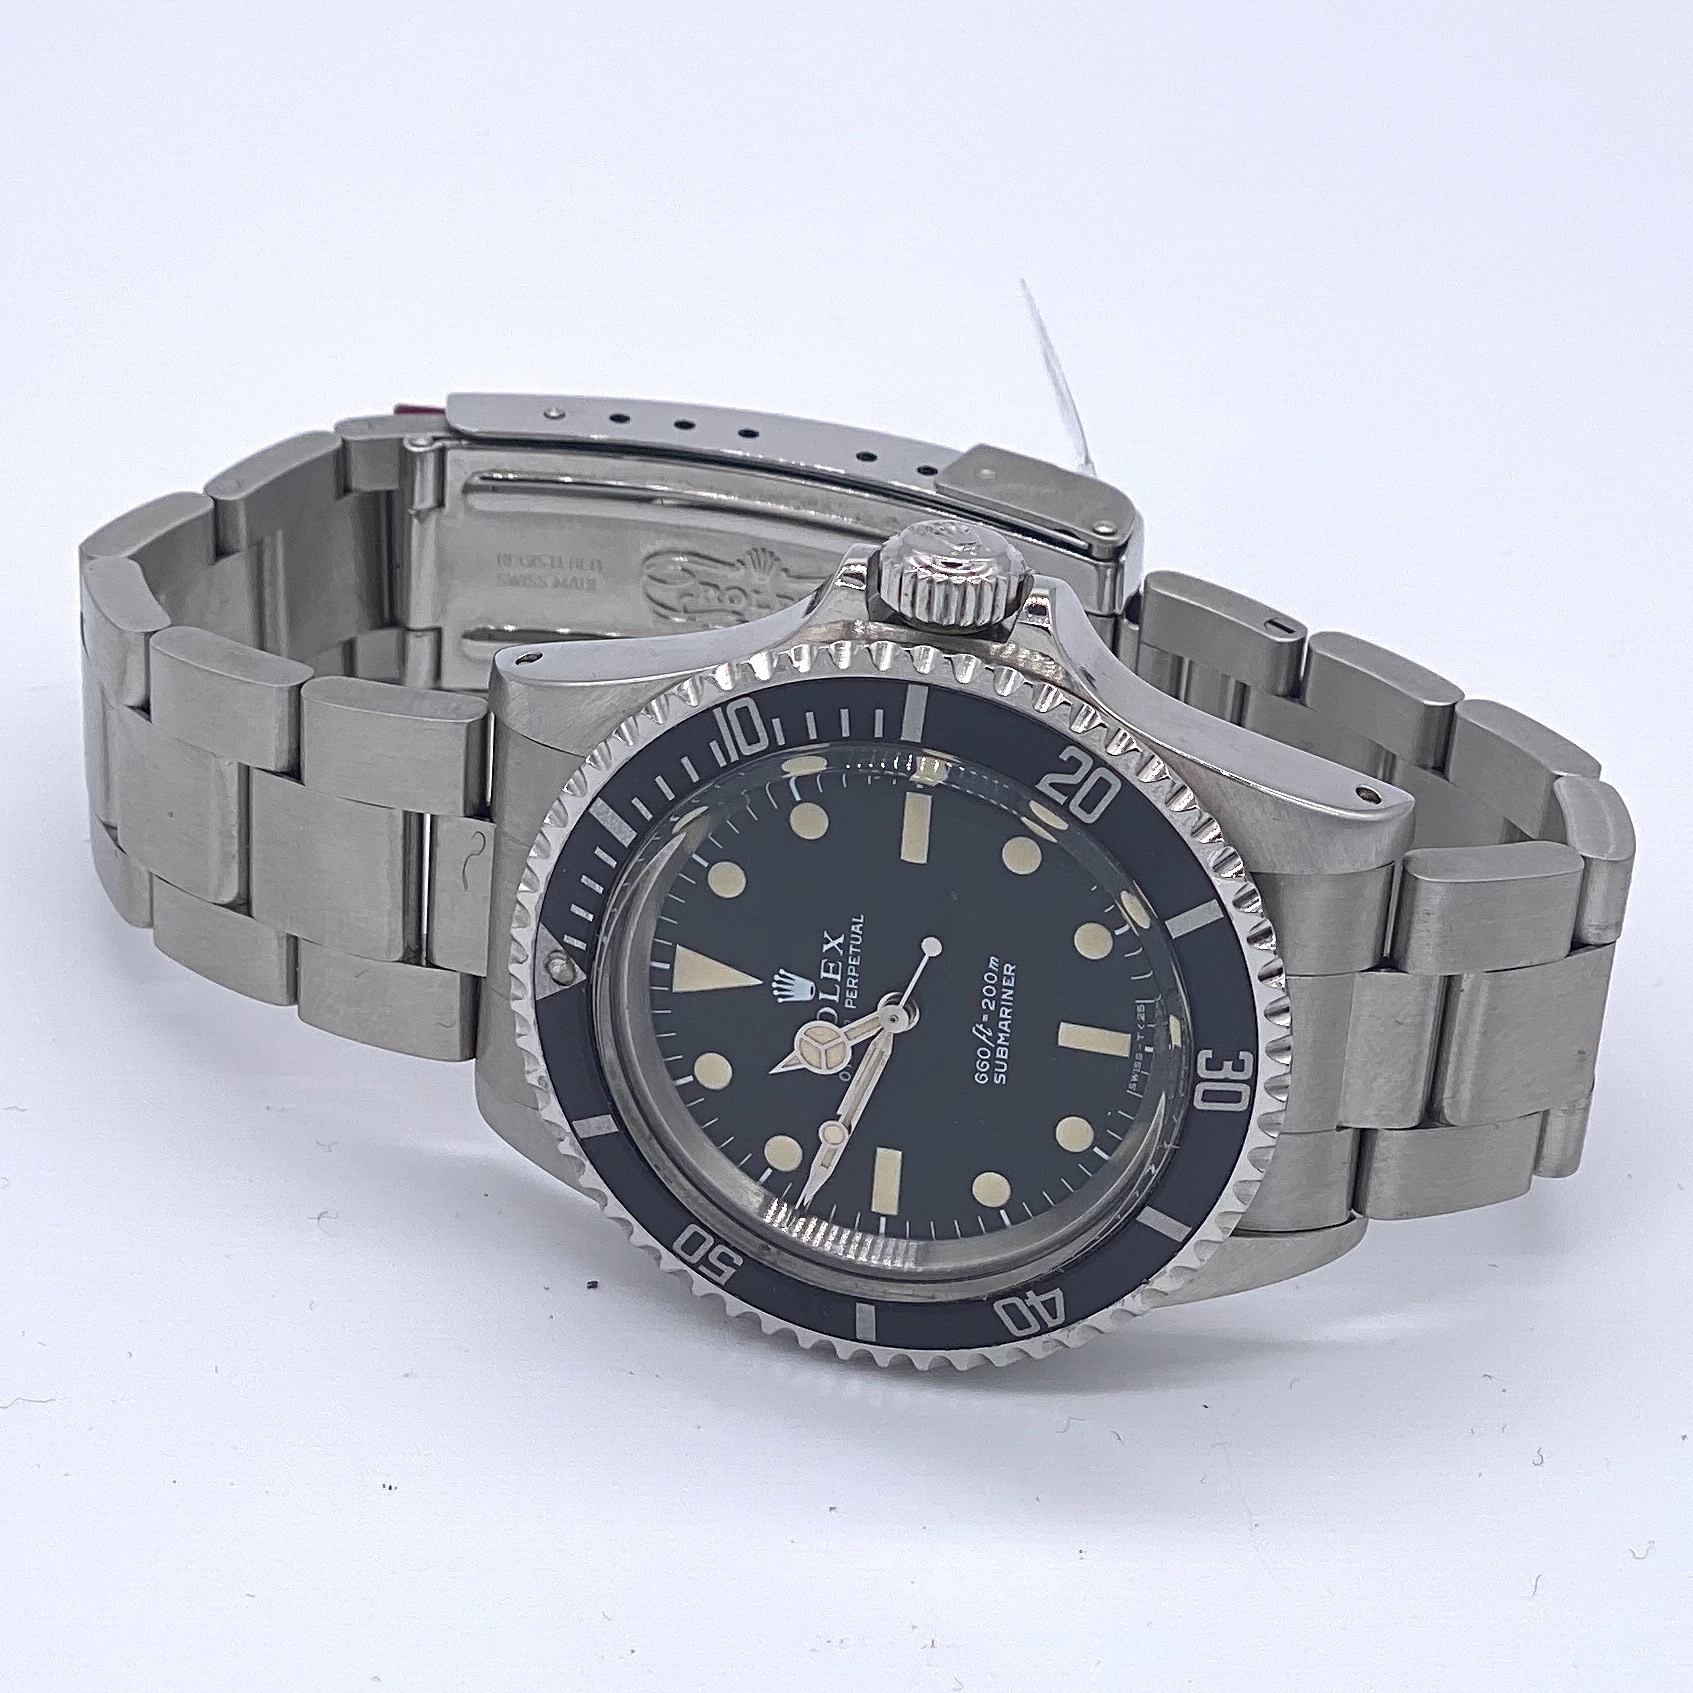 Lot 10 - Rolex Submariner 5513